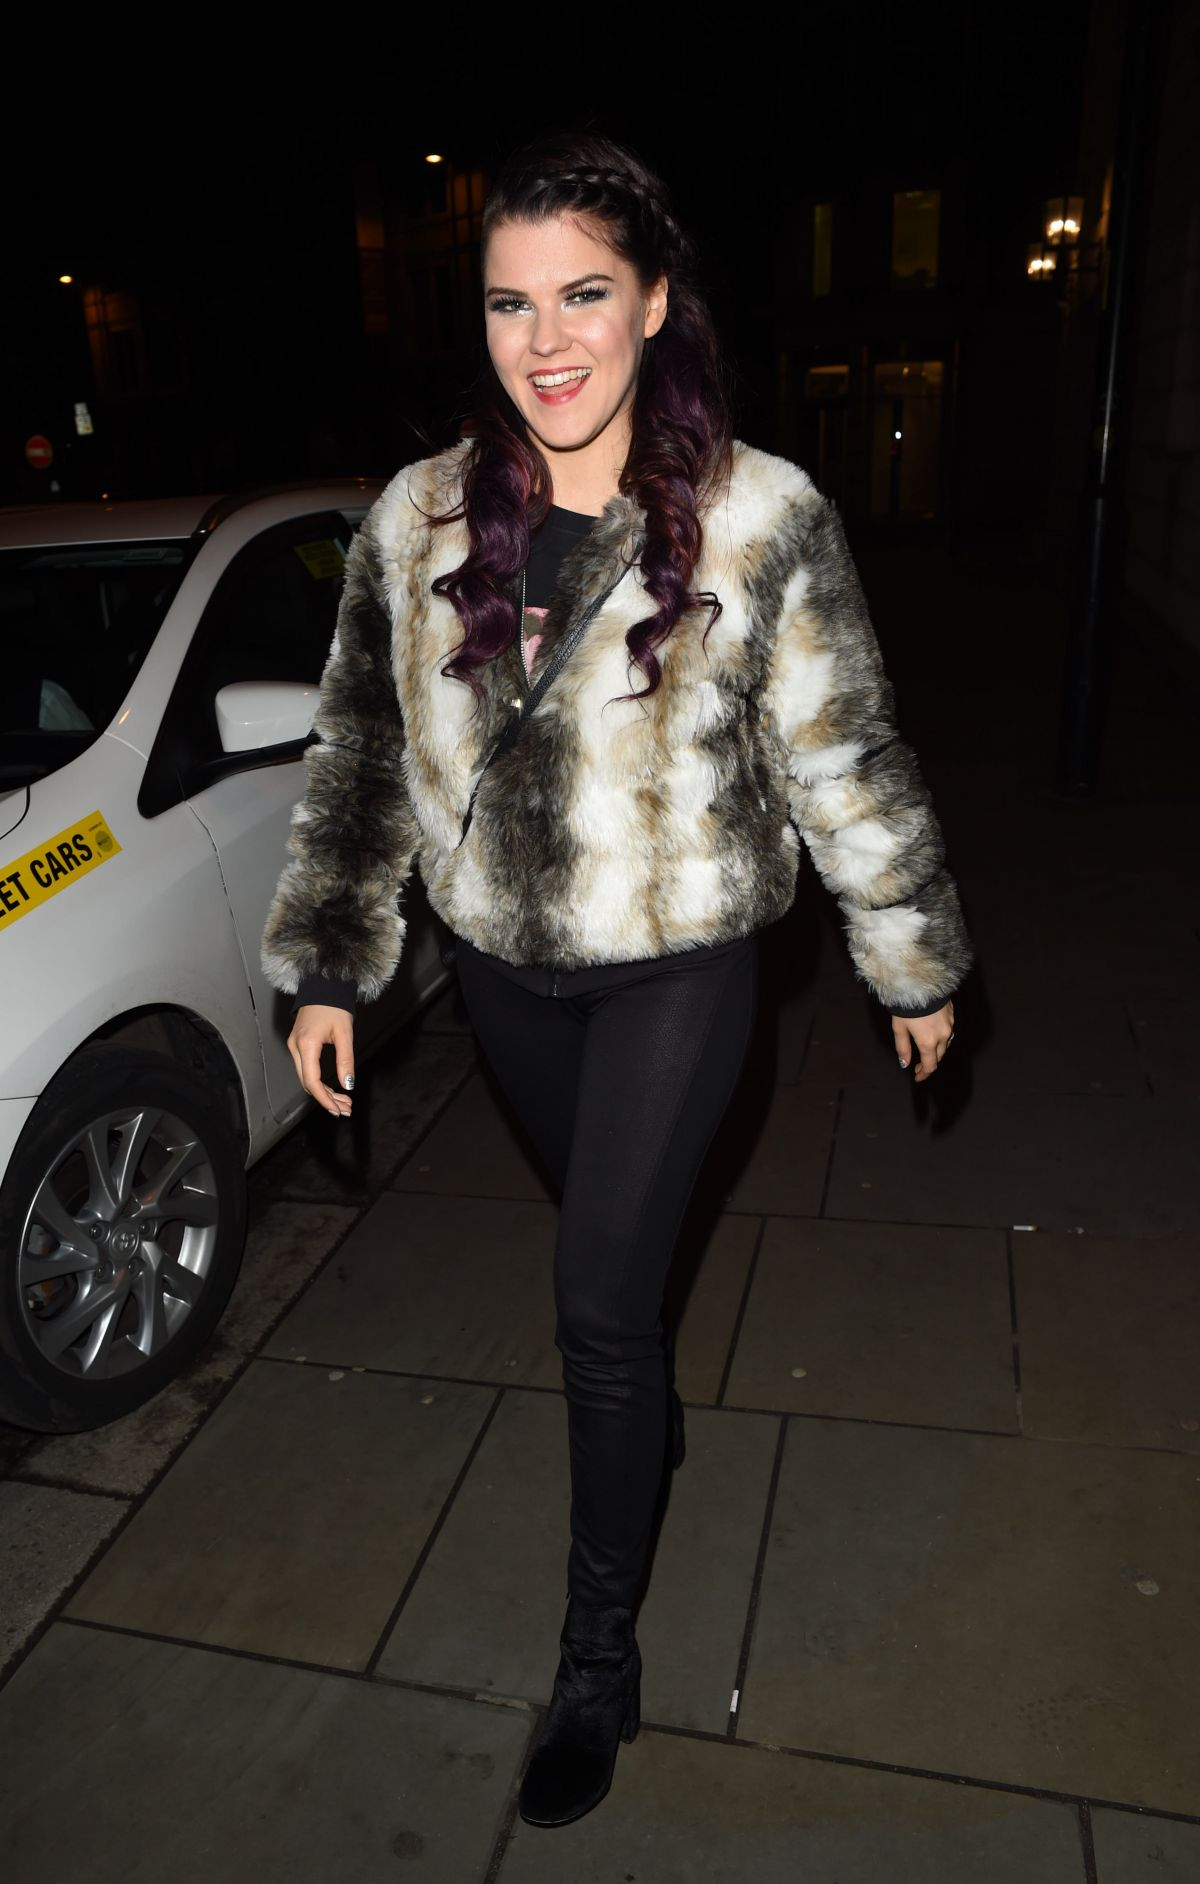 SAARA AALTO at Rosso Restaurant in Manchester 03/04/2017